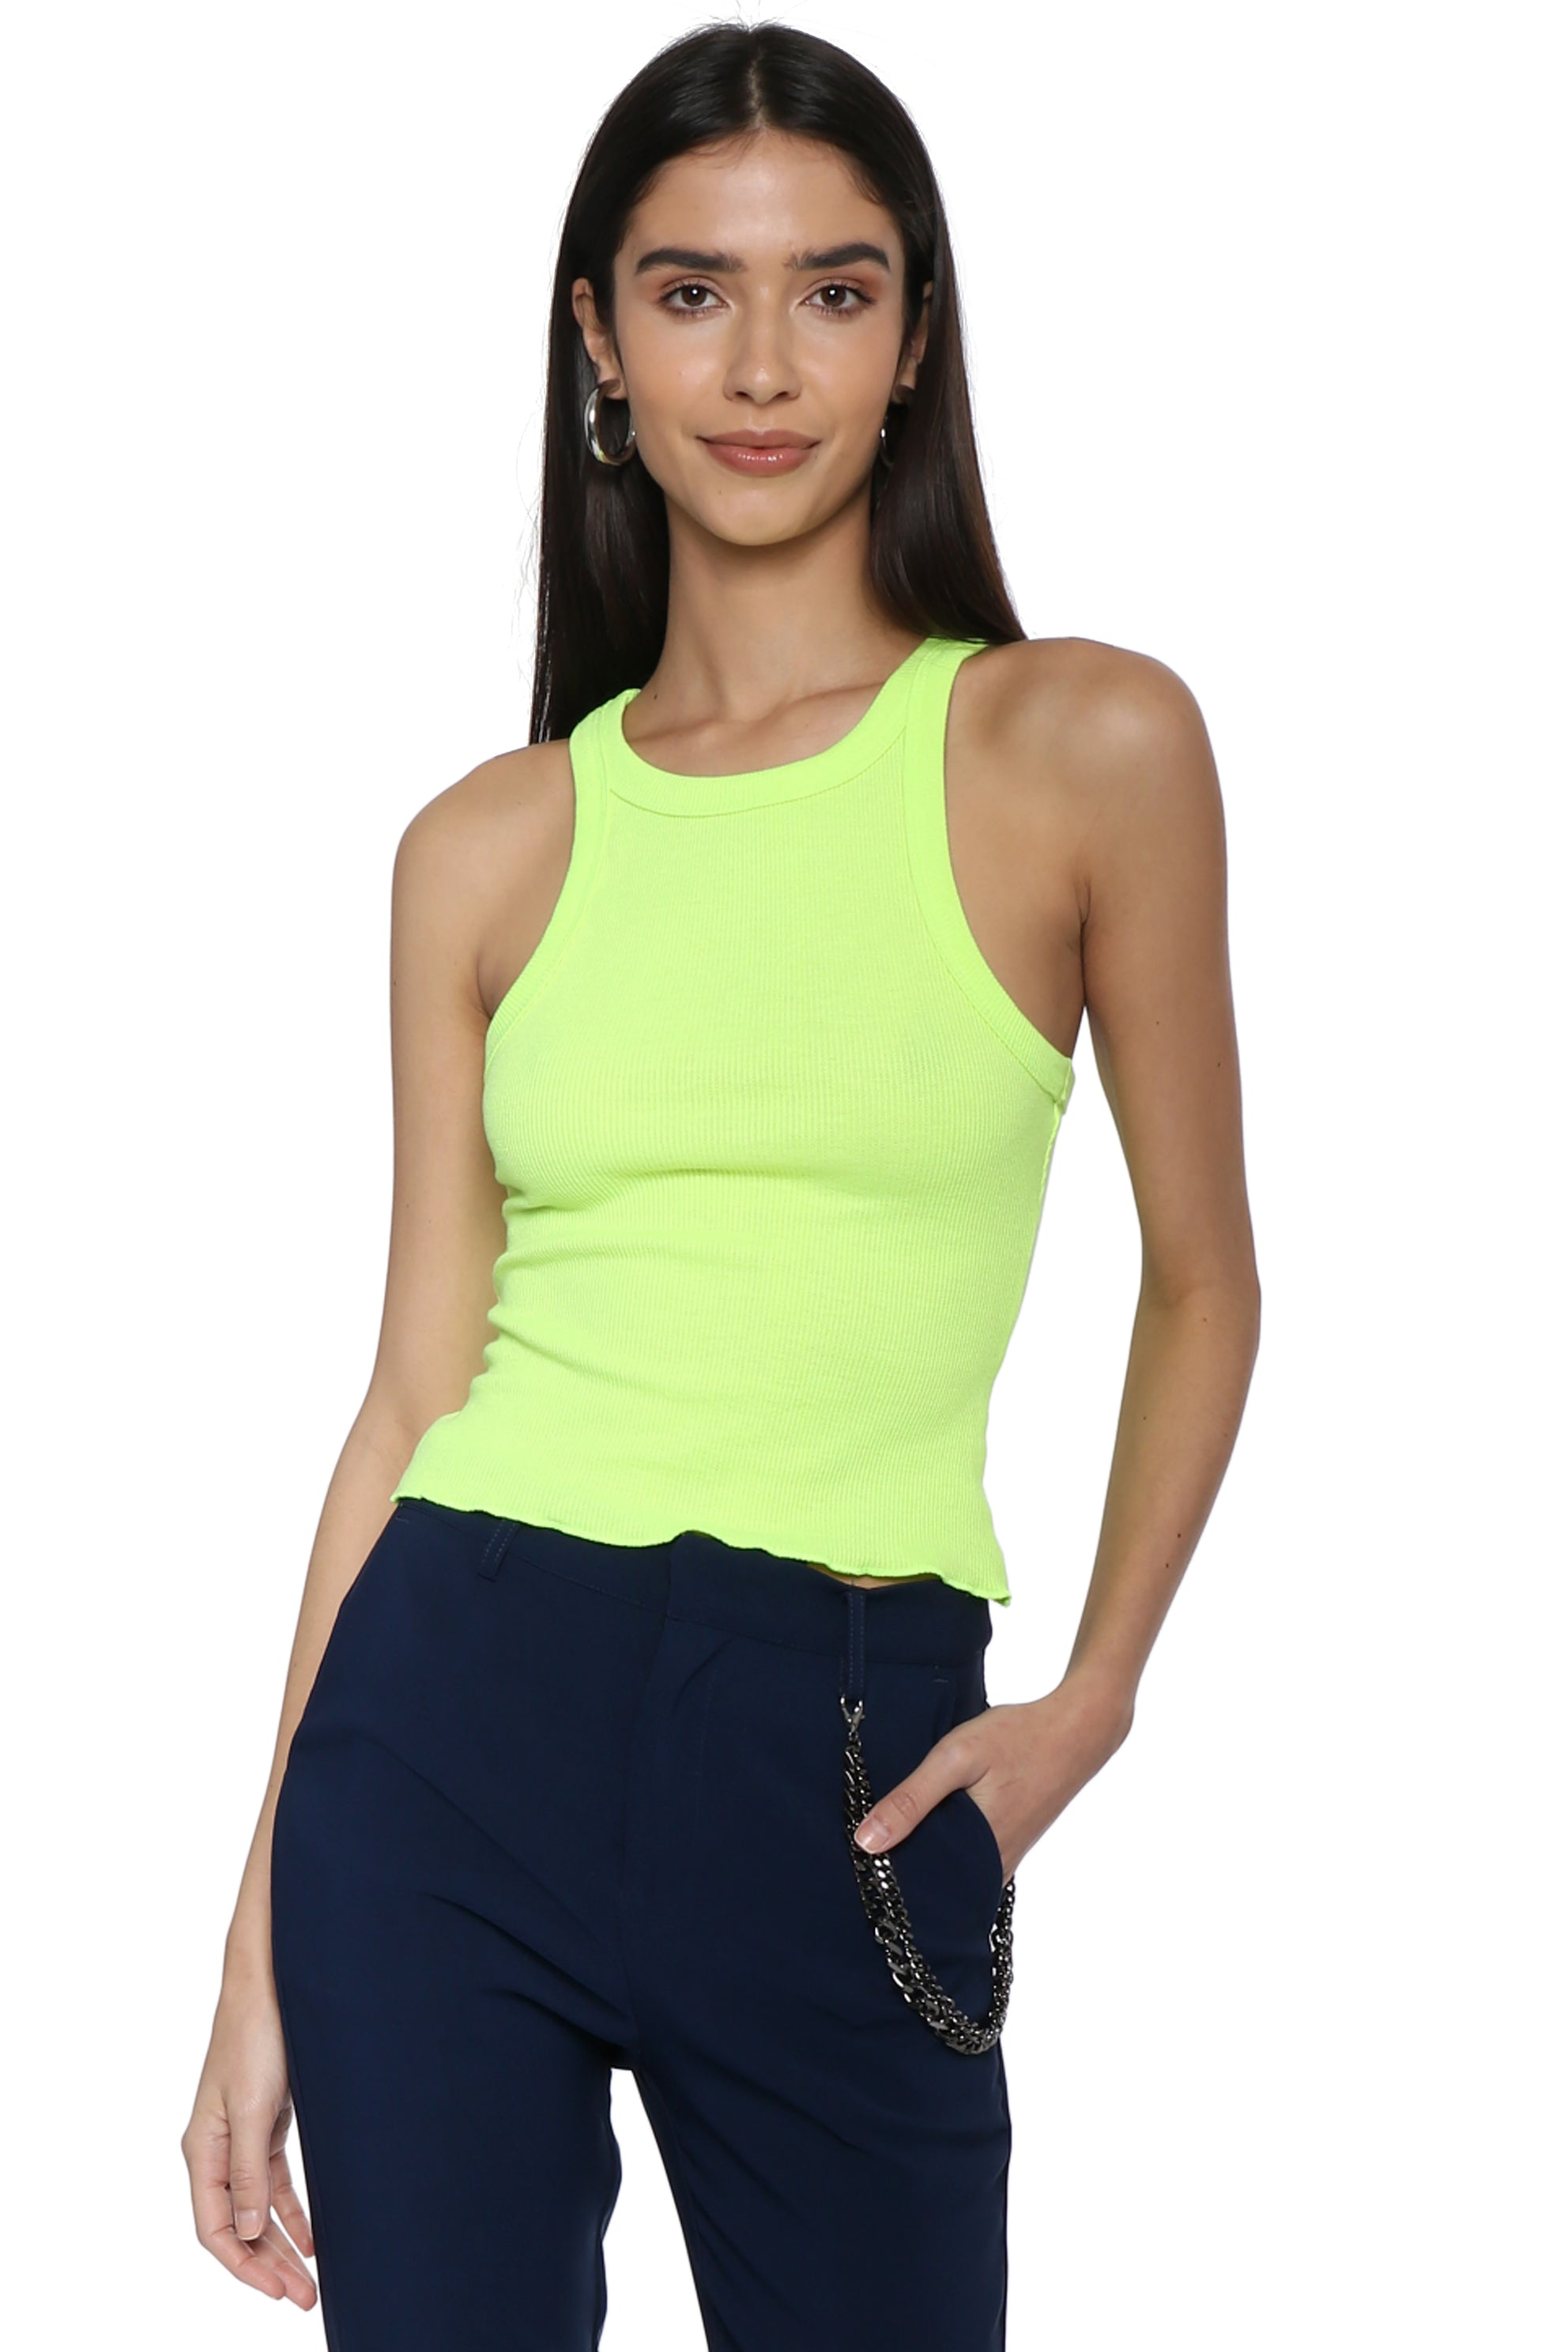 5514c6d7f7c2a Mixology Clothing - Shop the Latest Trends and Hottest Designers